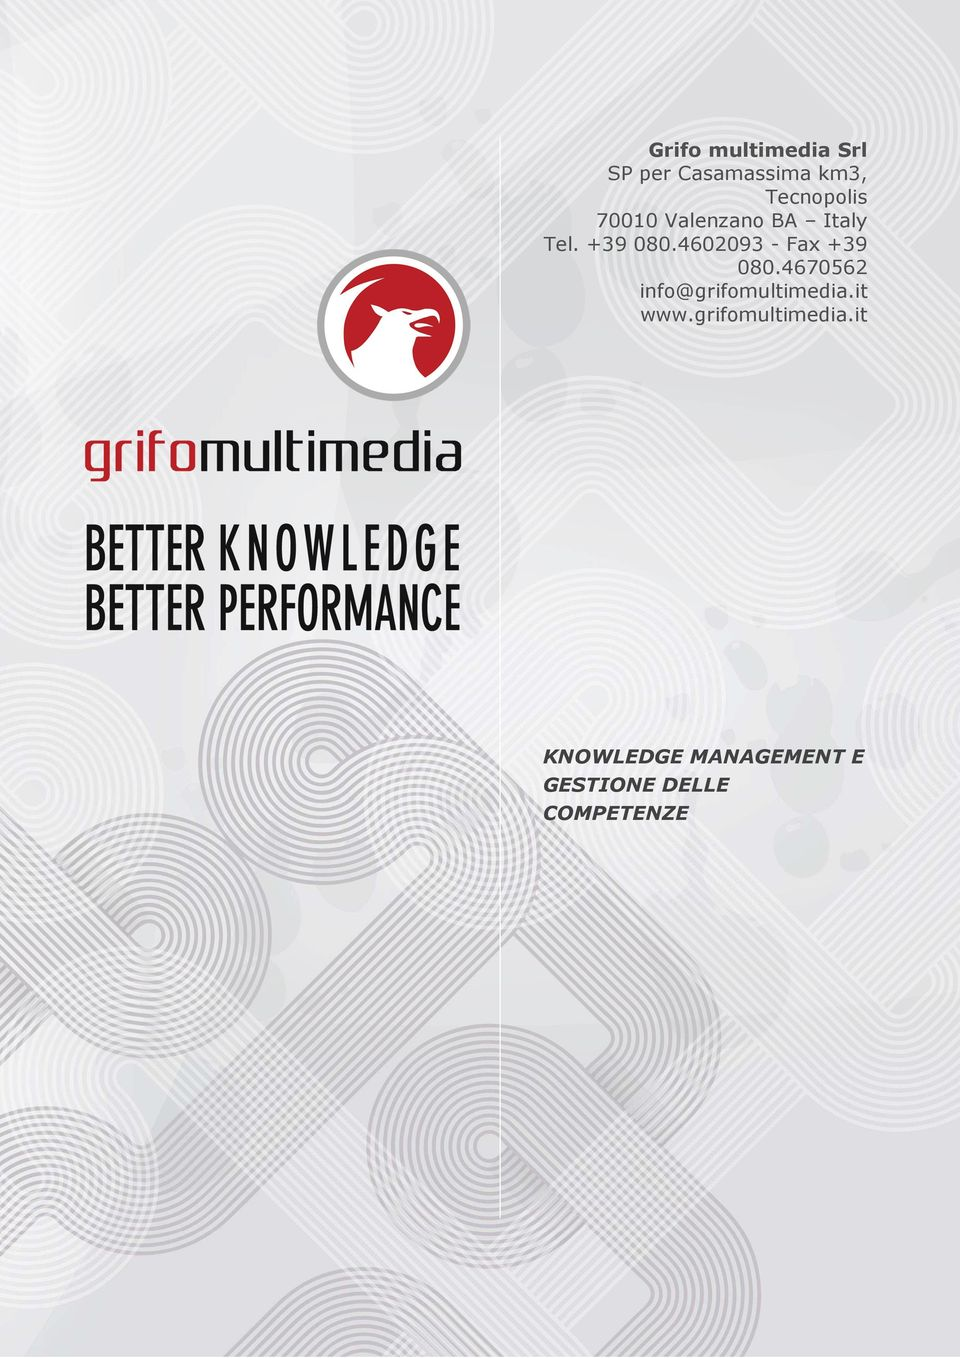 4602093 - Fax +39 080.4670562 info@grifomultimedia.